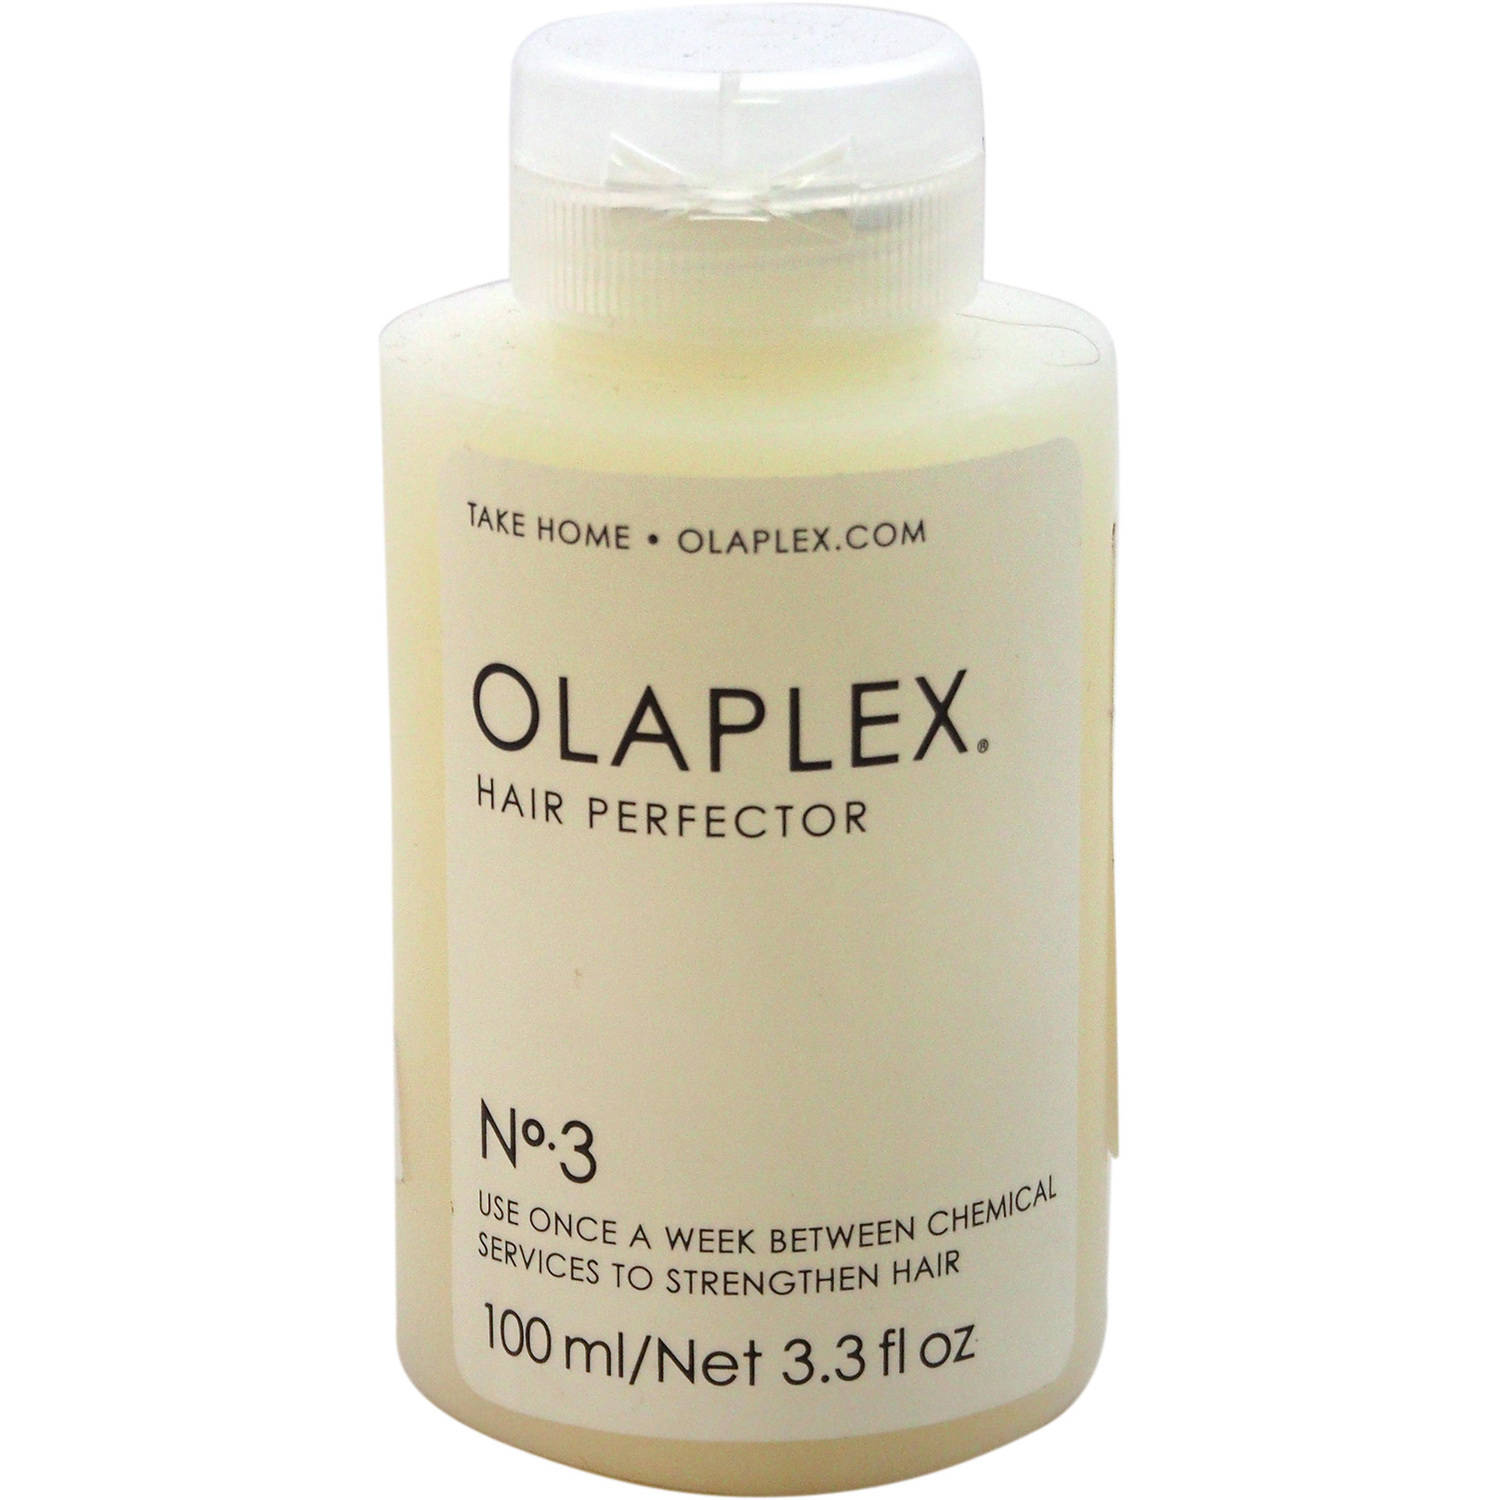 Olaplex Hair Perfector No.3 by Olaplex for Unisex, 3.3 oz